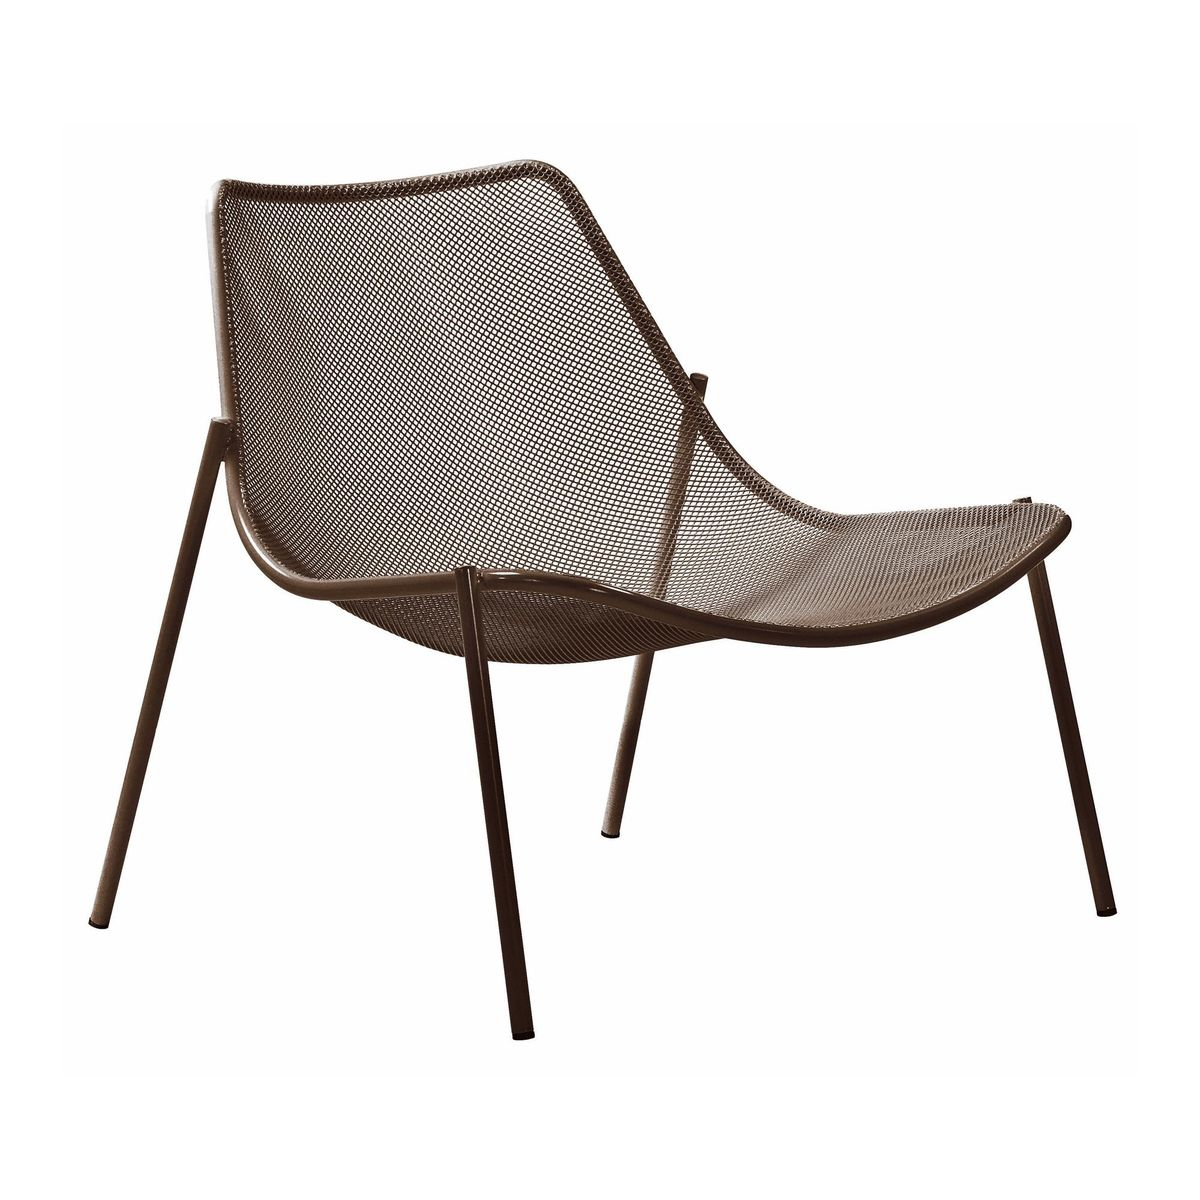 Fauteuils Indiens Round Lounge Chair Emu Ambientedirect